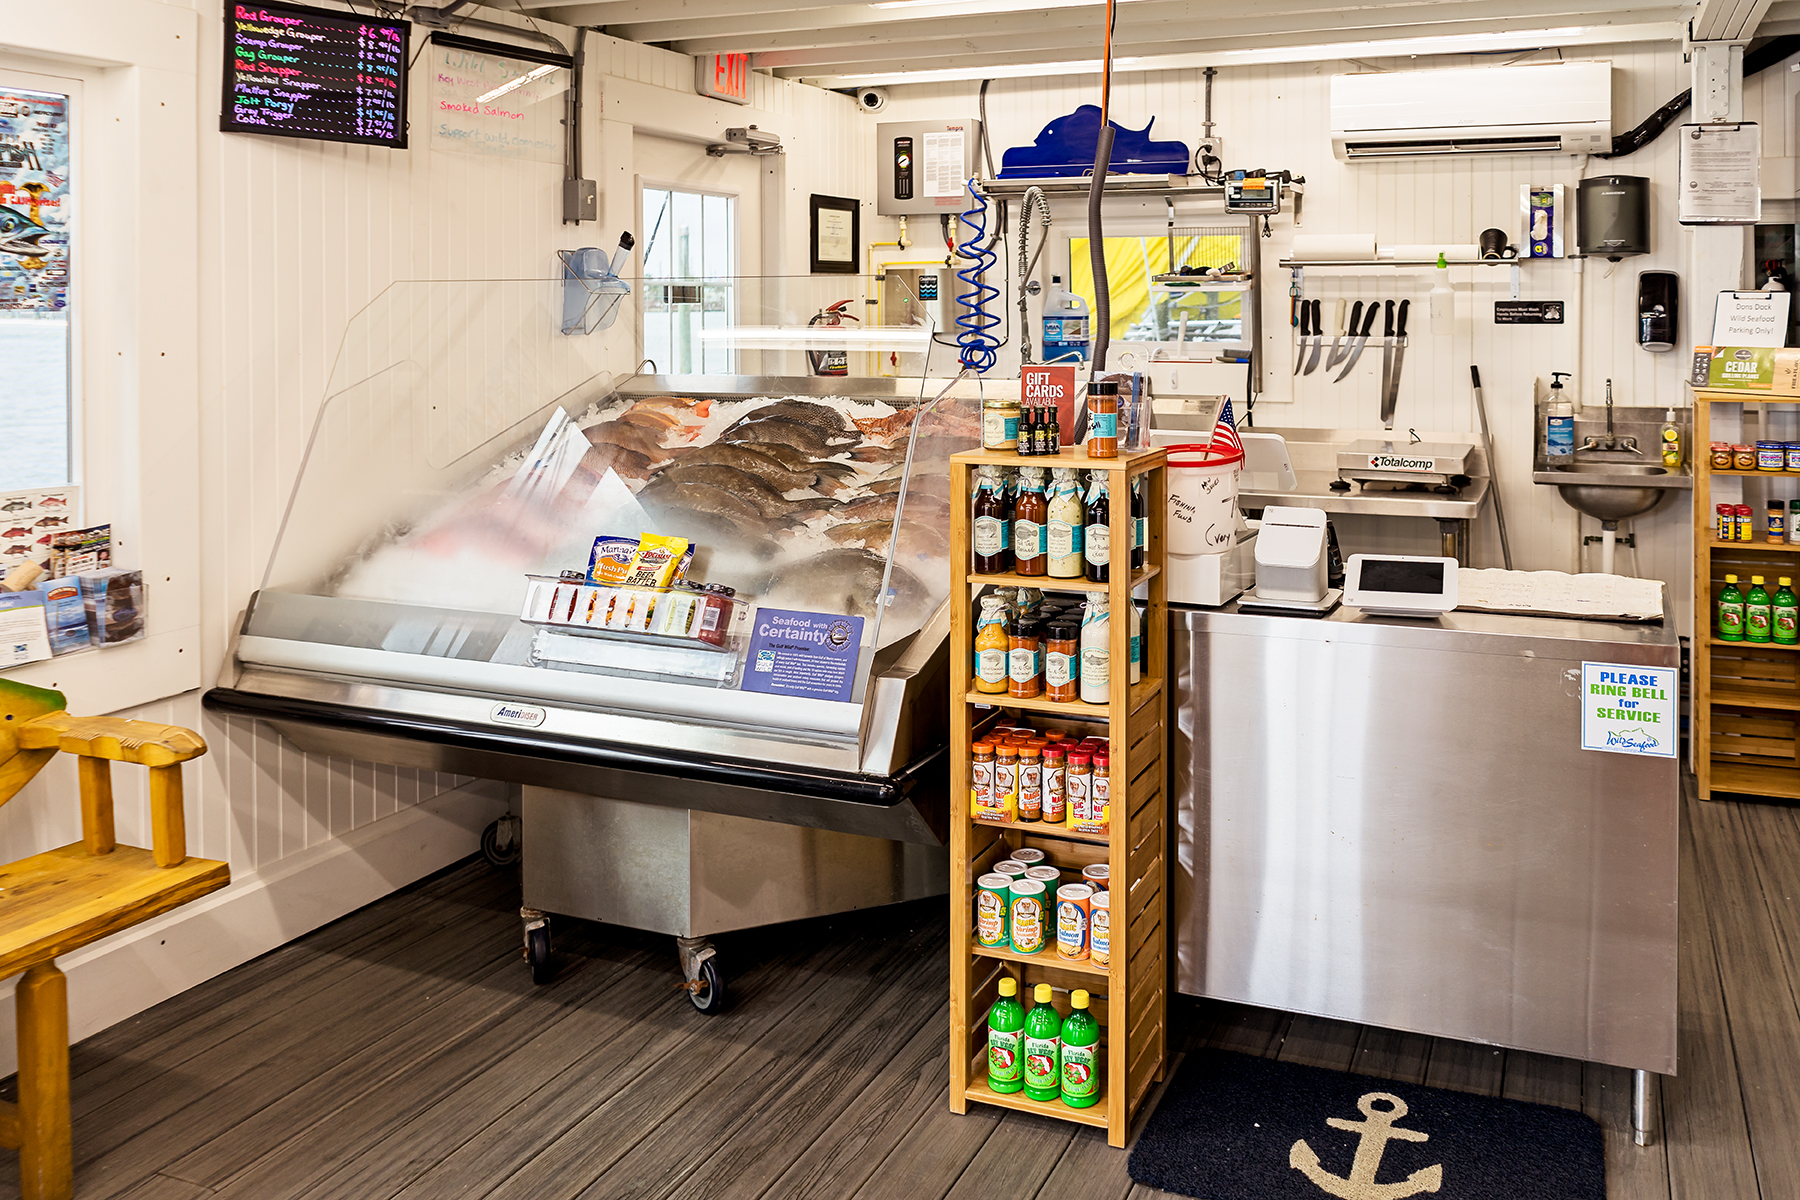 Wild Seafood also offers a selection of fish for the local consumer. These fish include Red Grouper, Scamp Grouper, Red Snapper, Hogfish, Gag Grouper, and Mangrove Snapper. They also offer spices and marinades to go with your seafood purchase.